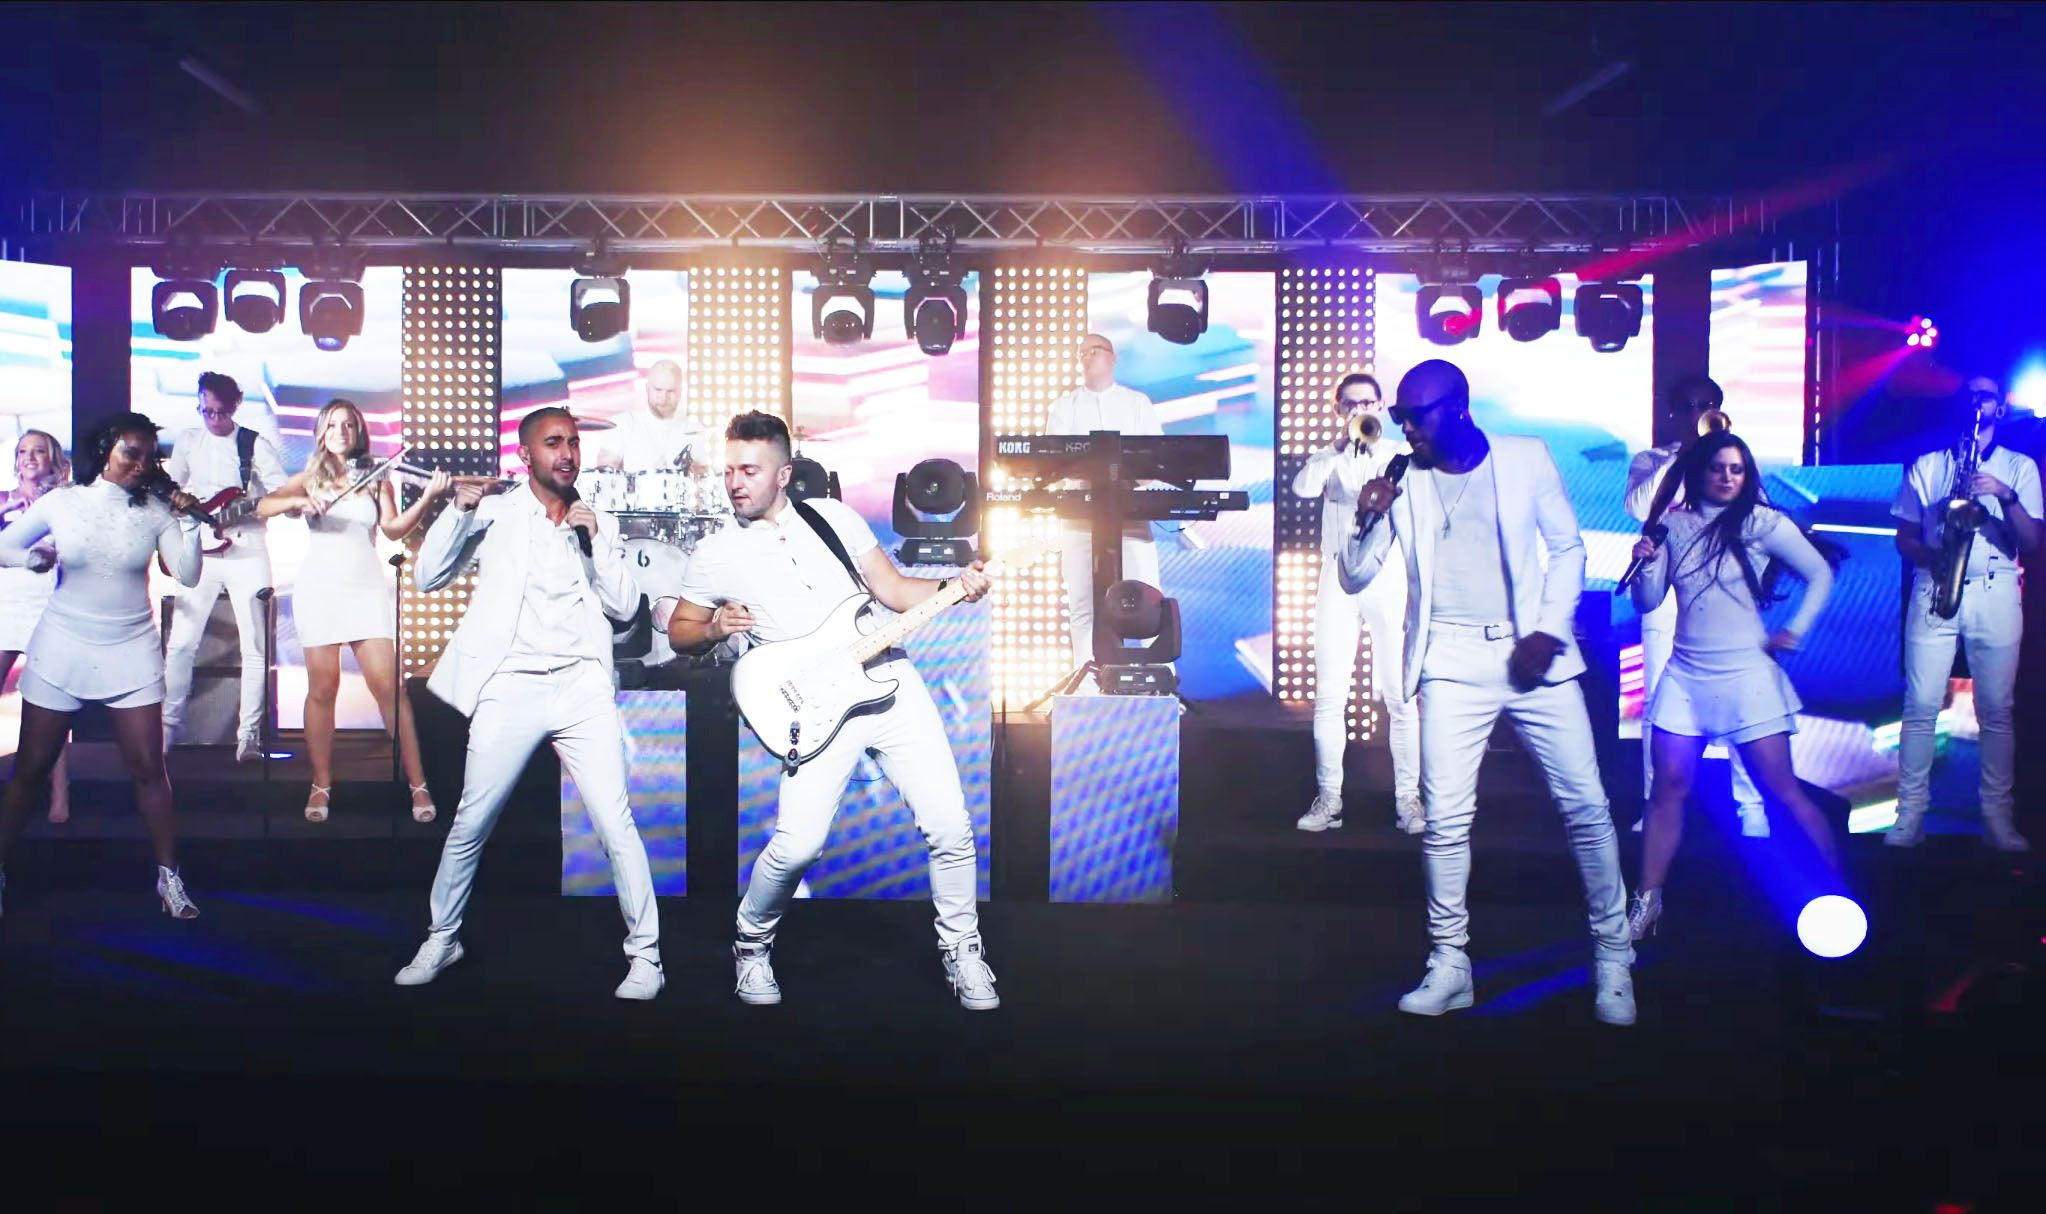 Jam Hot perform Beat It wearing Ice White outfits